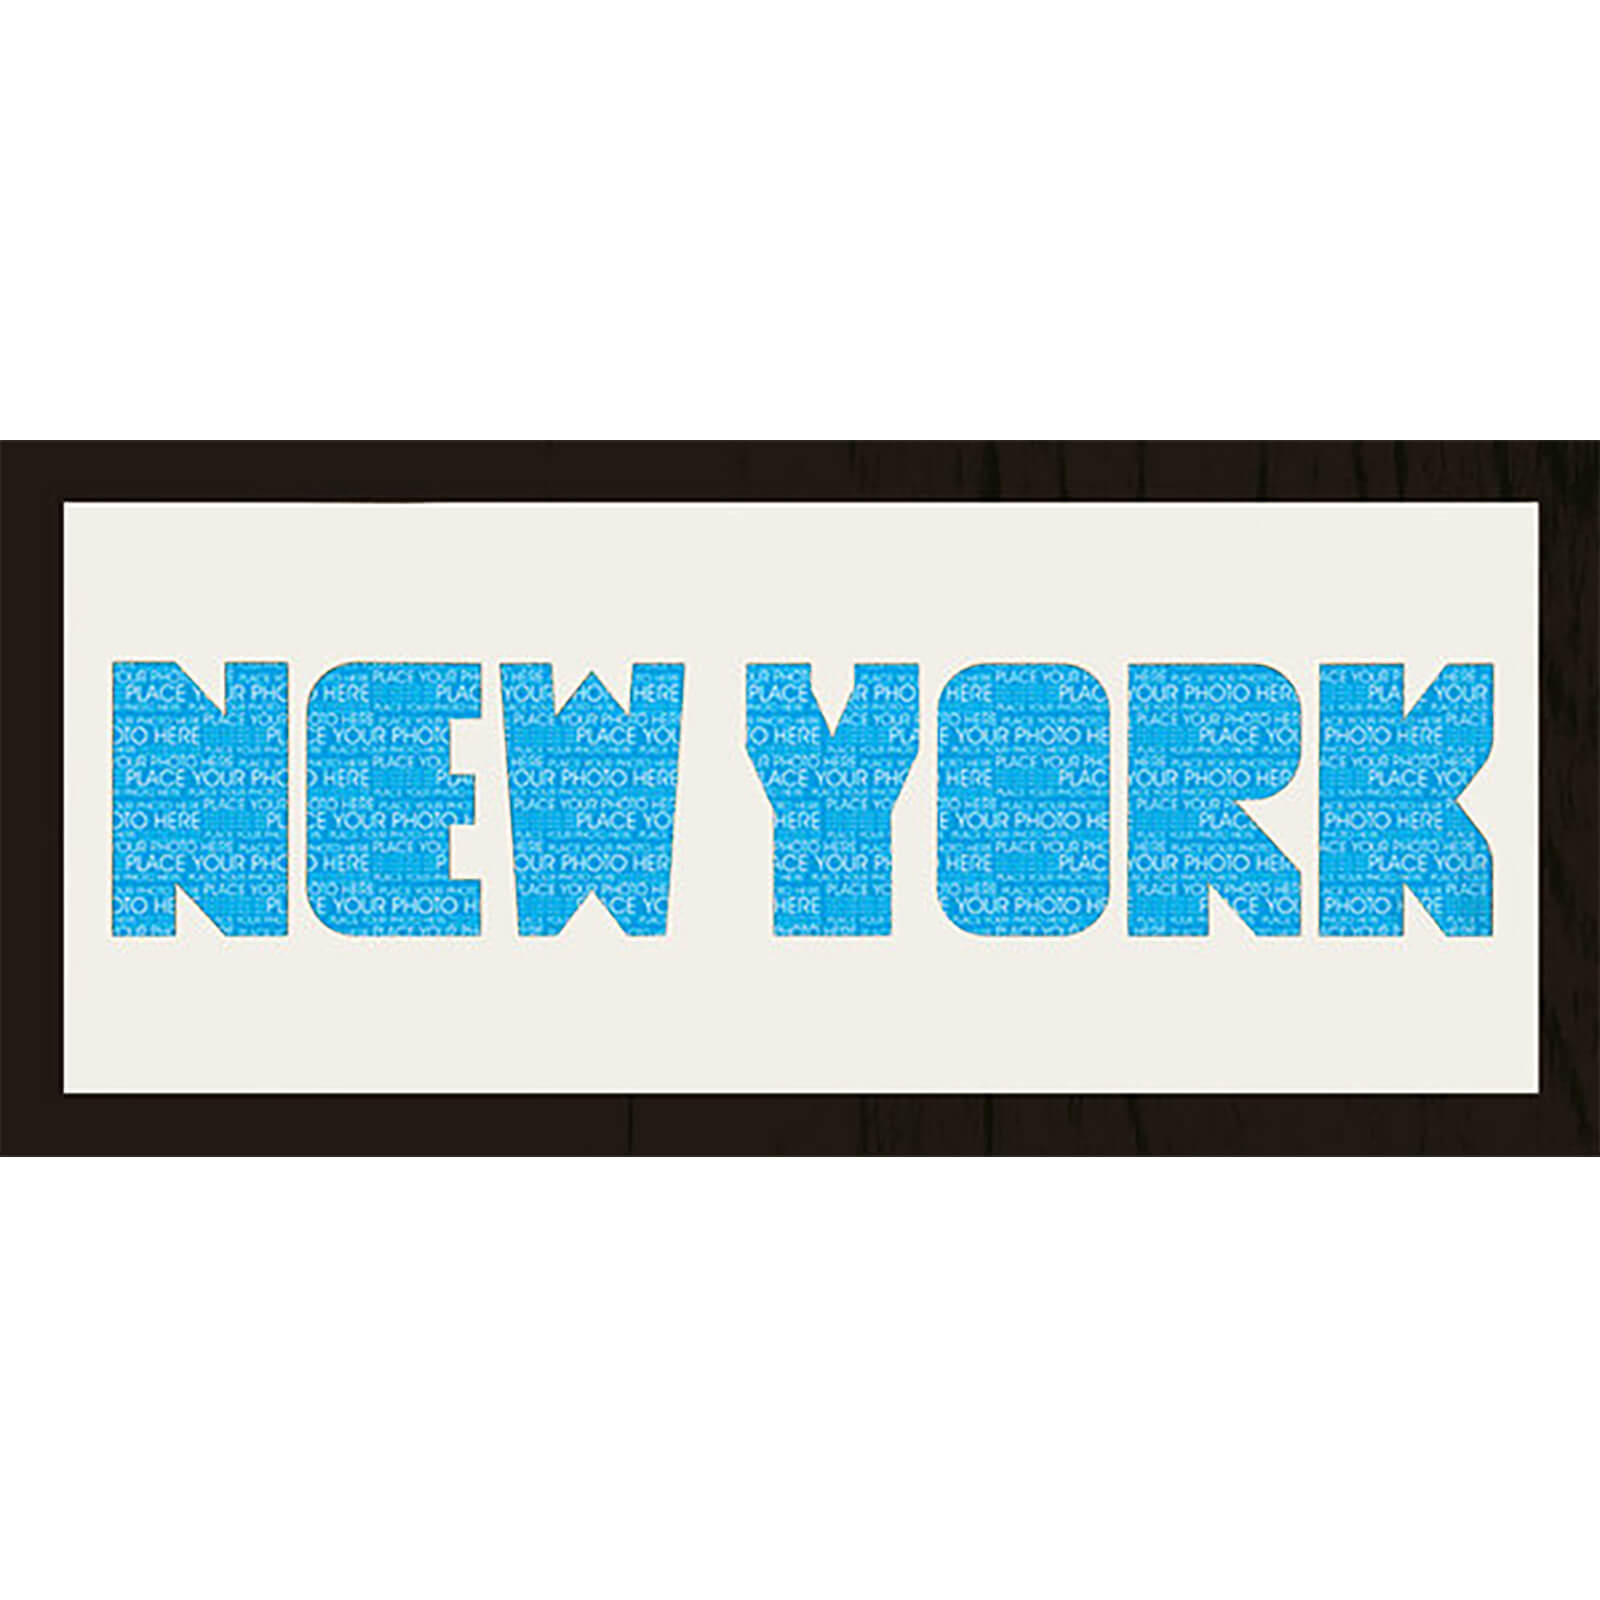 "GB Cream Mount New York Photo Font - Framed Mount - 12"""" x 30"""